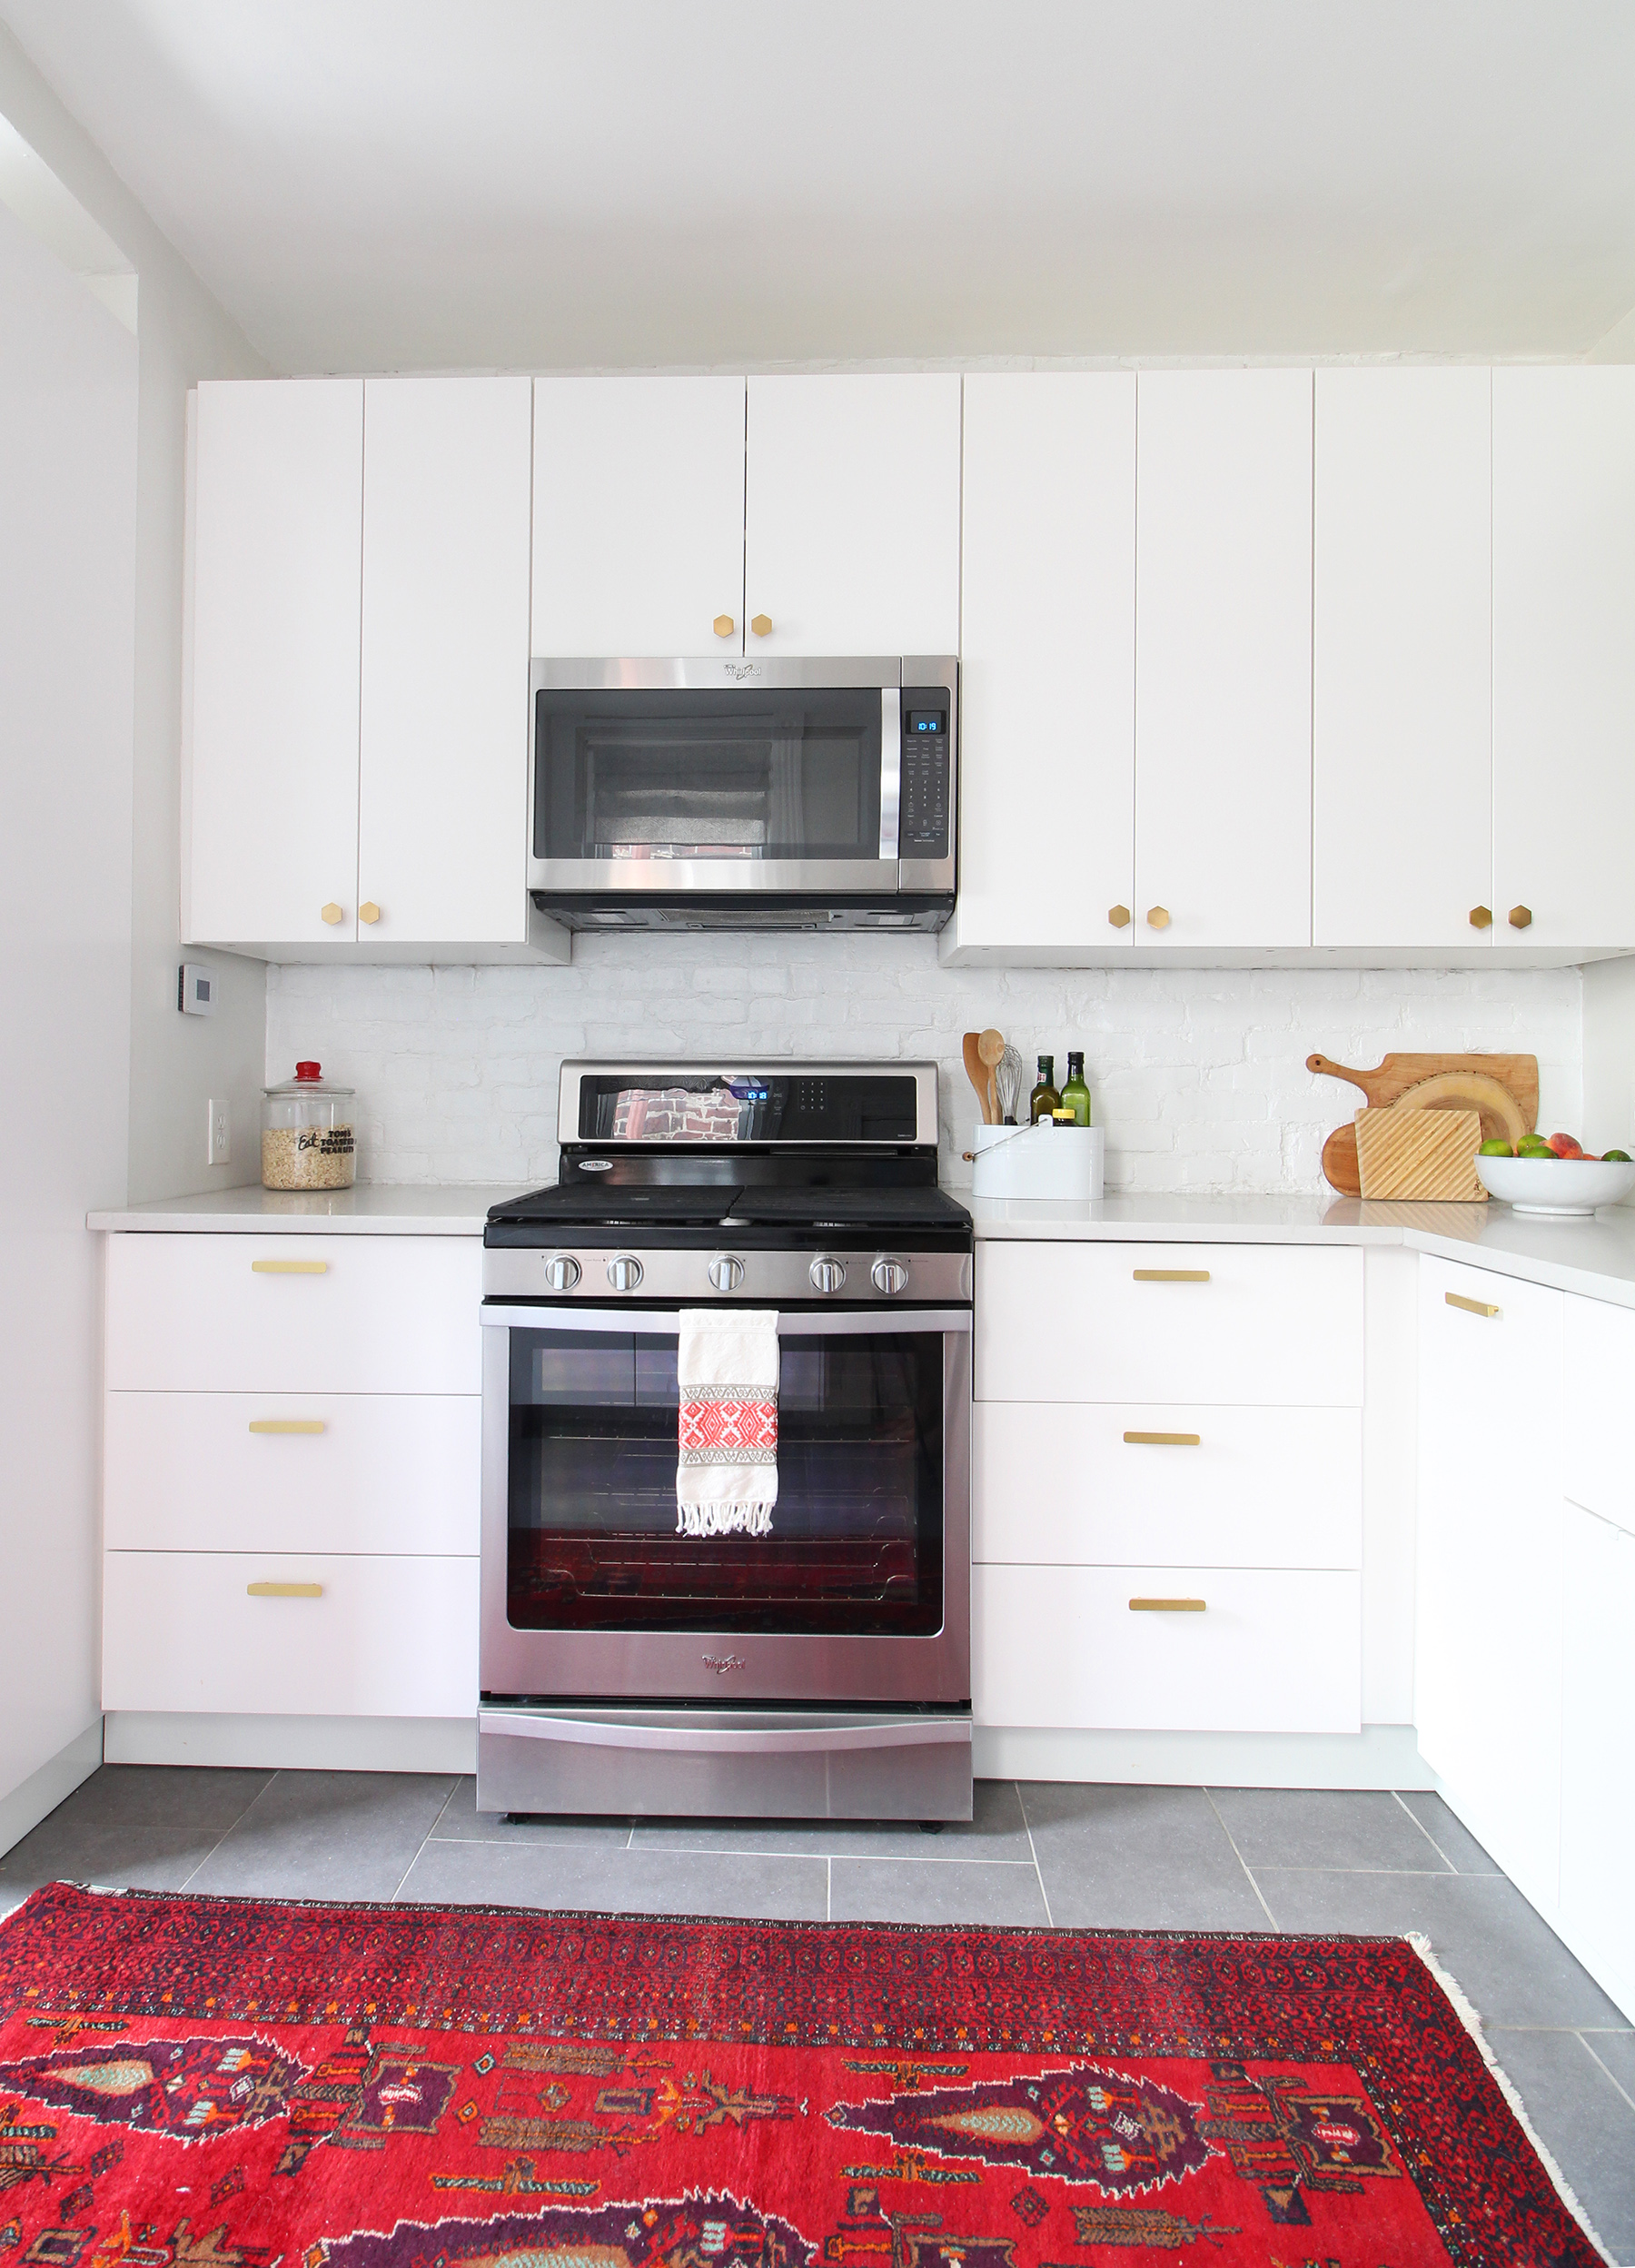 A 1930s row home in Philadelphia gets a big makeover. Come see the before and after of this home's living, dining, and kitchen open floor plan and get ideas for small space city living. Chaney's style is mid-century modern meets traditional that makes for an eclectic, cozy space. A modern kitchen with white cabinets and quartz countertops.